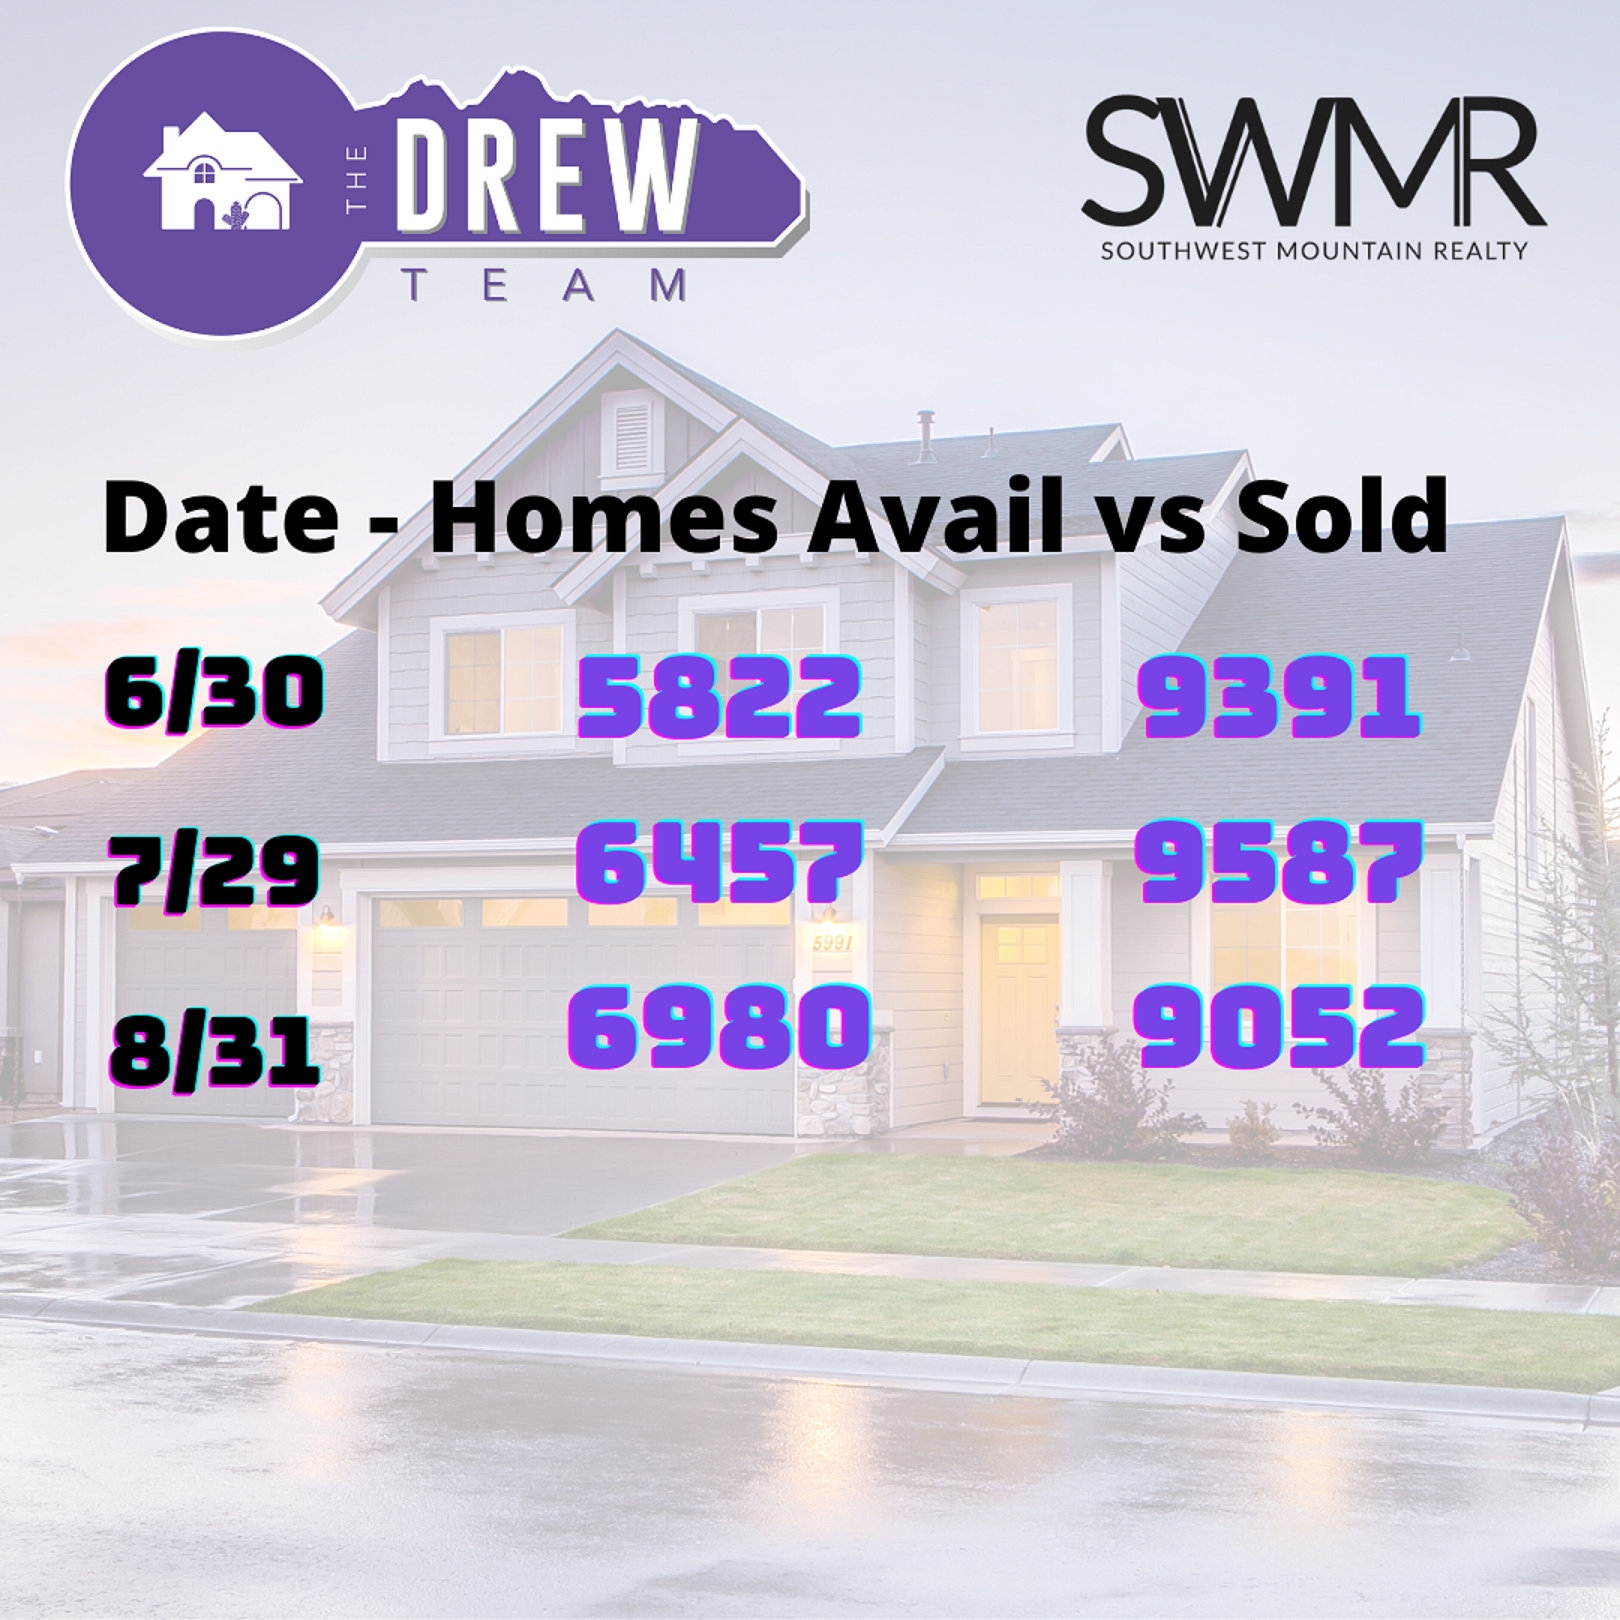 Arizona Real Estate Remains Consistent with The Drew Team winning!